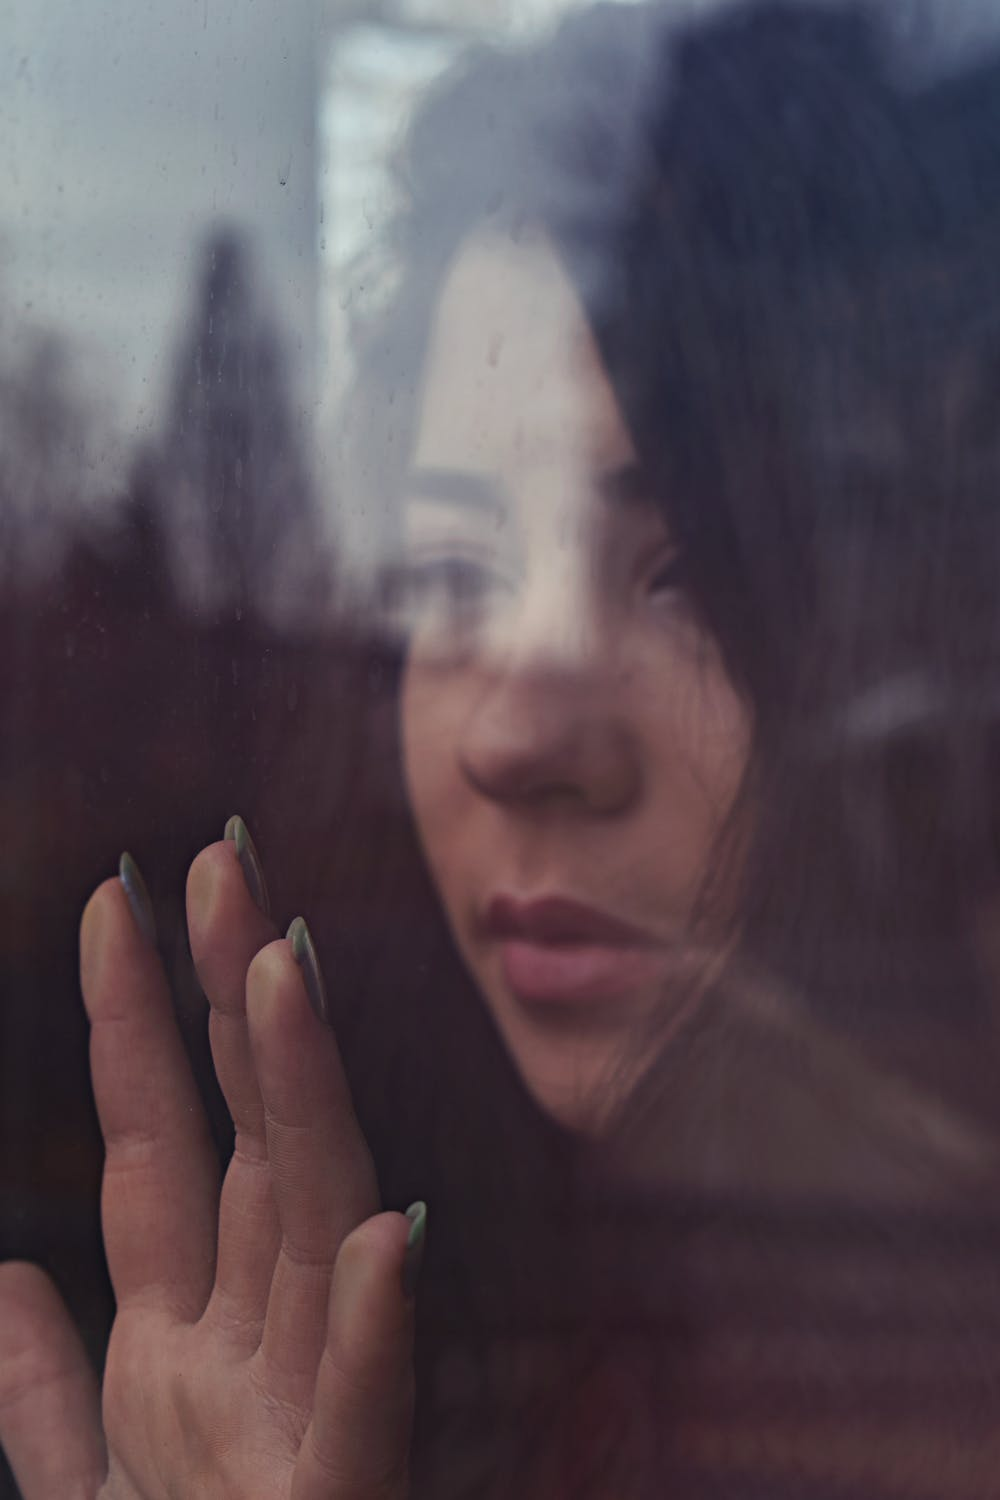 A sad woman touching the window | Photo: Pexels